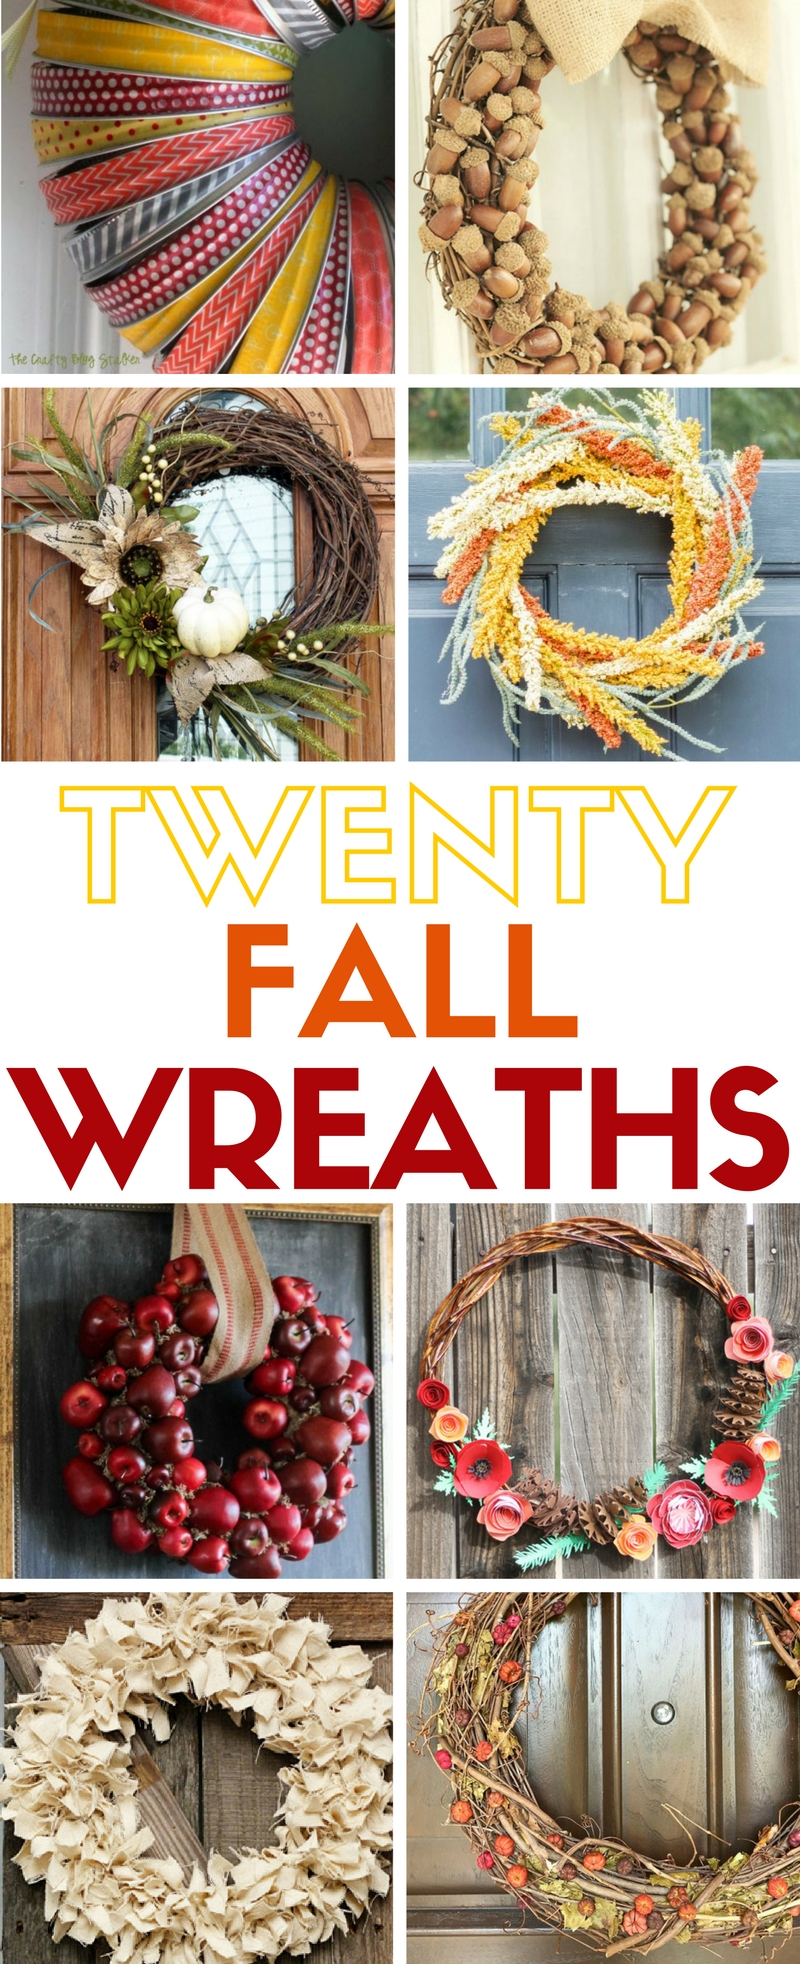 My favorite post from this week's Linky Party is this Easy Fall Wreath ideas. Learn how to make 20 easy fall wreaths. Hang them on your front door or inside for autumn home decor. Simple DIY craft tutorial ideas.